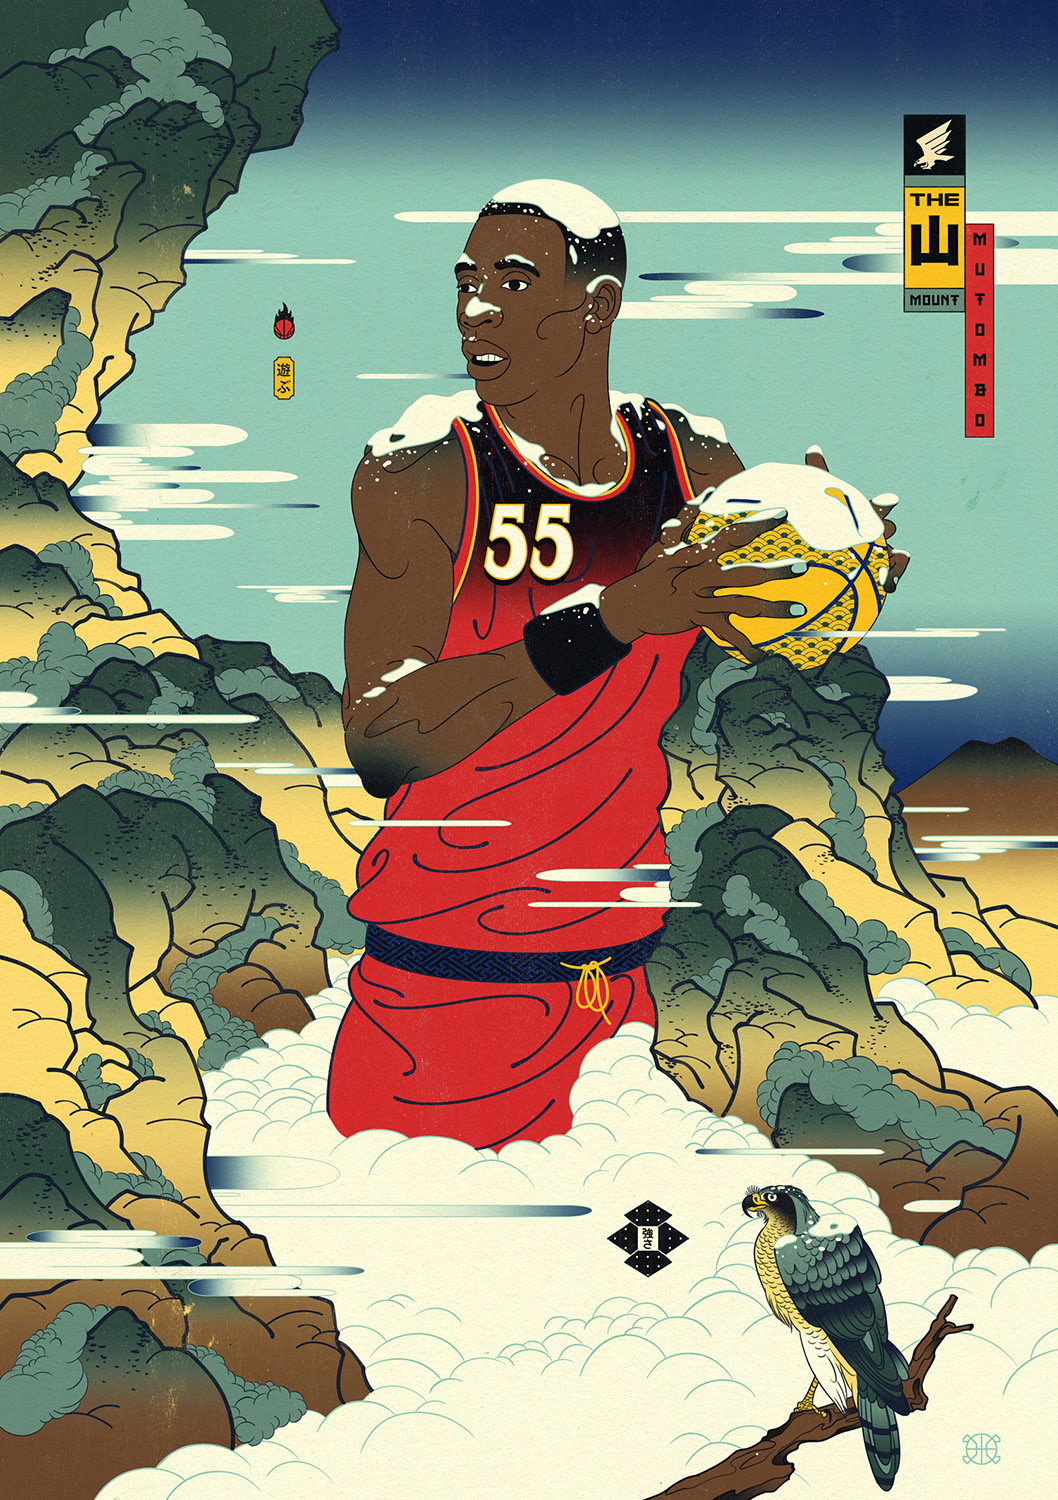 Edo Ball NBA Basketball Art - Mt. Mutumbo.